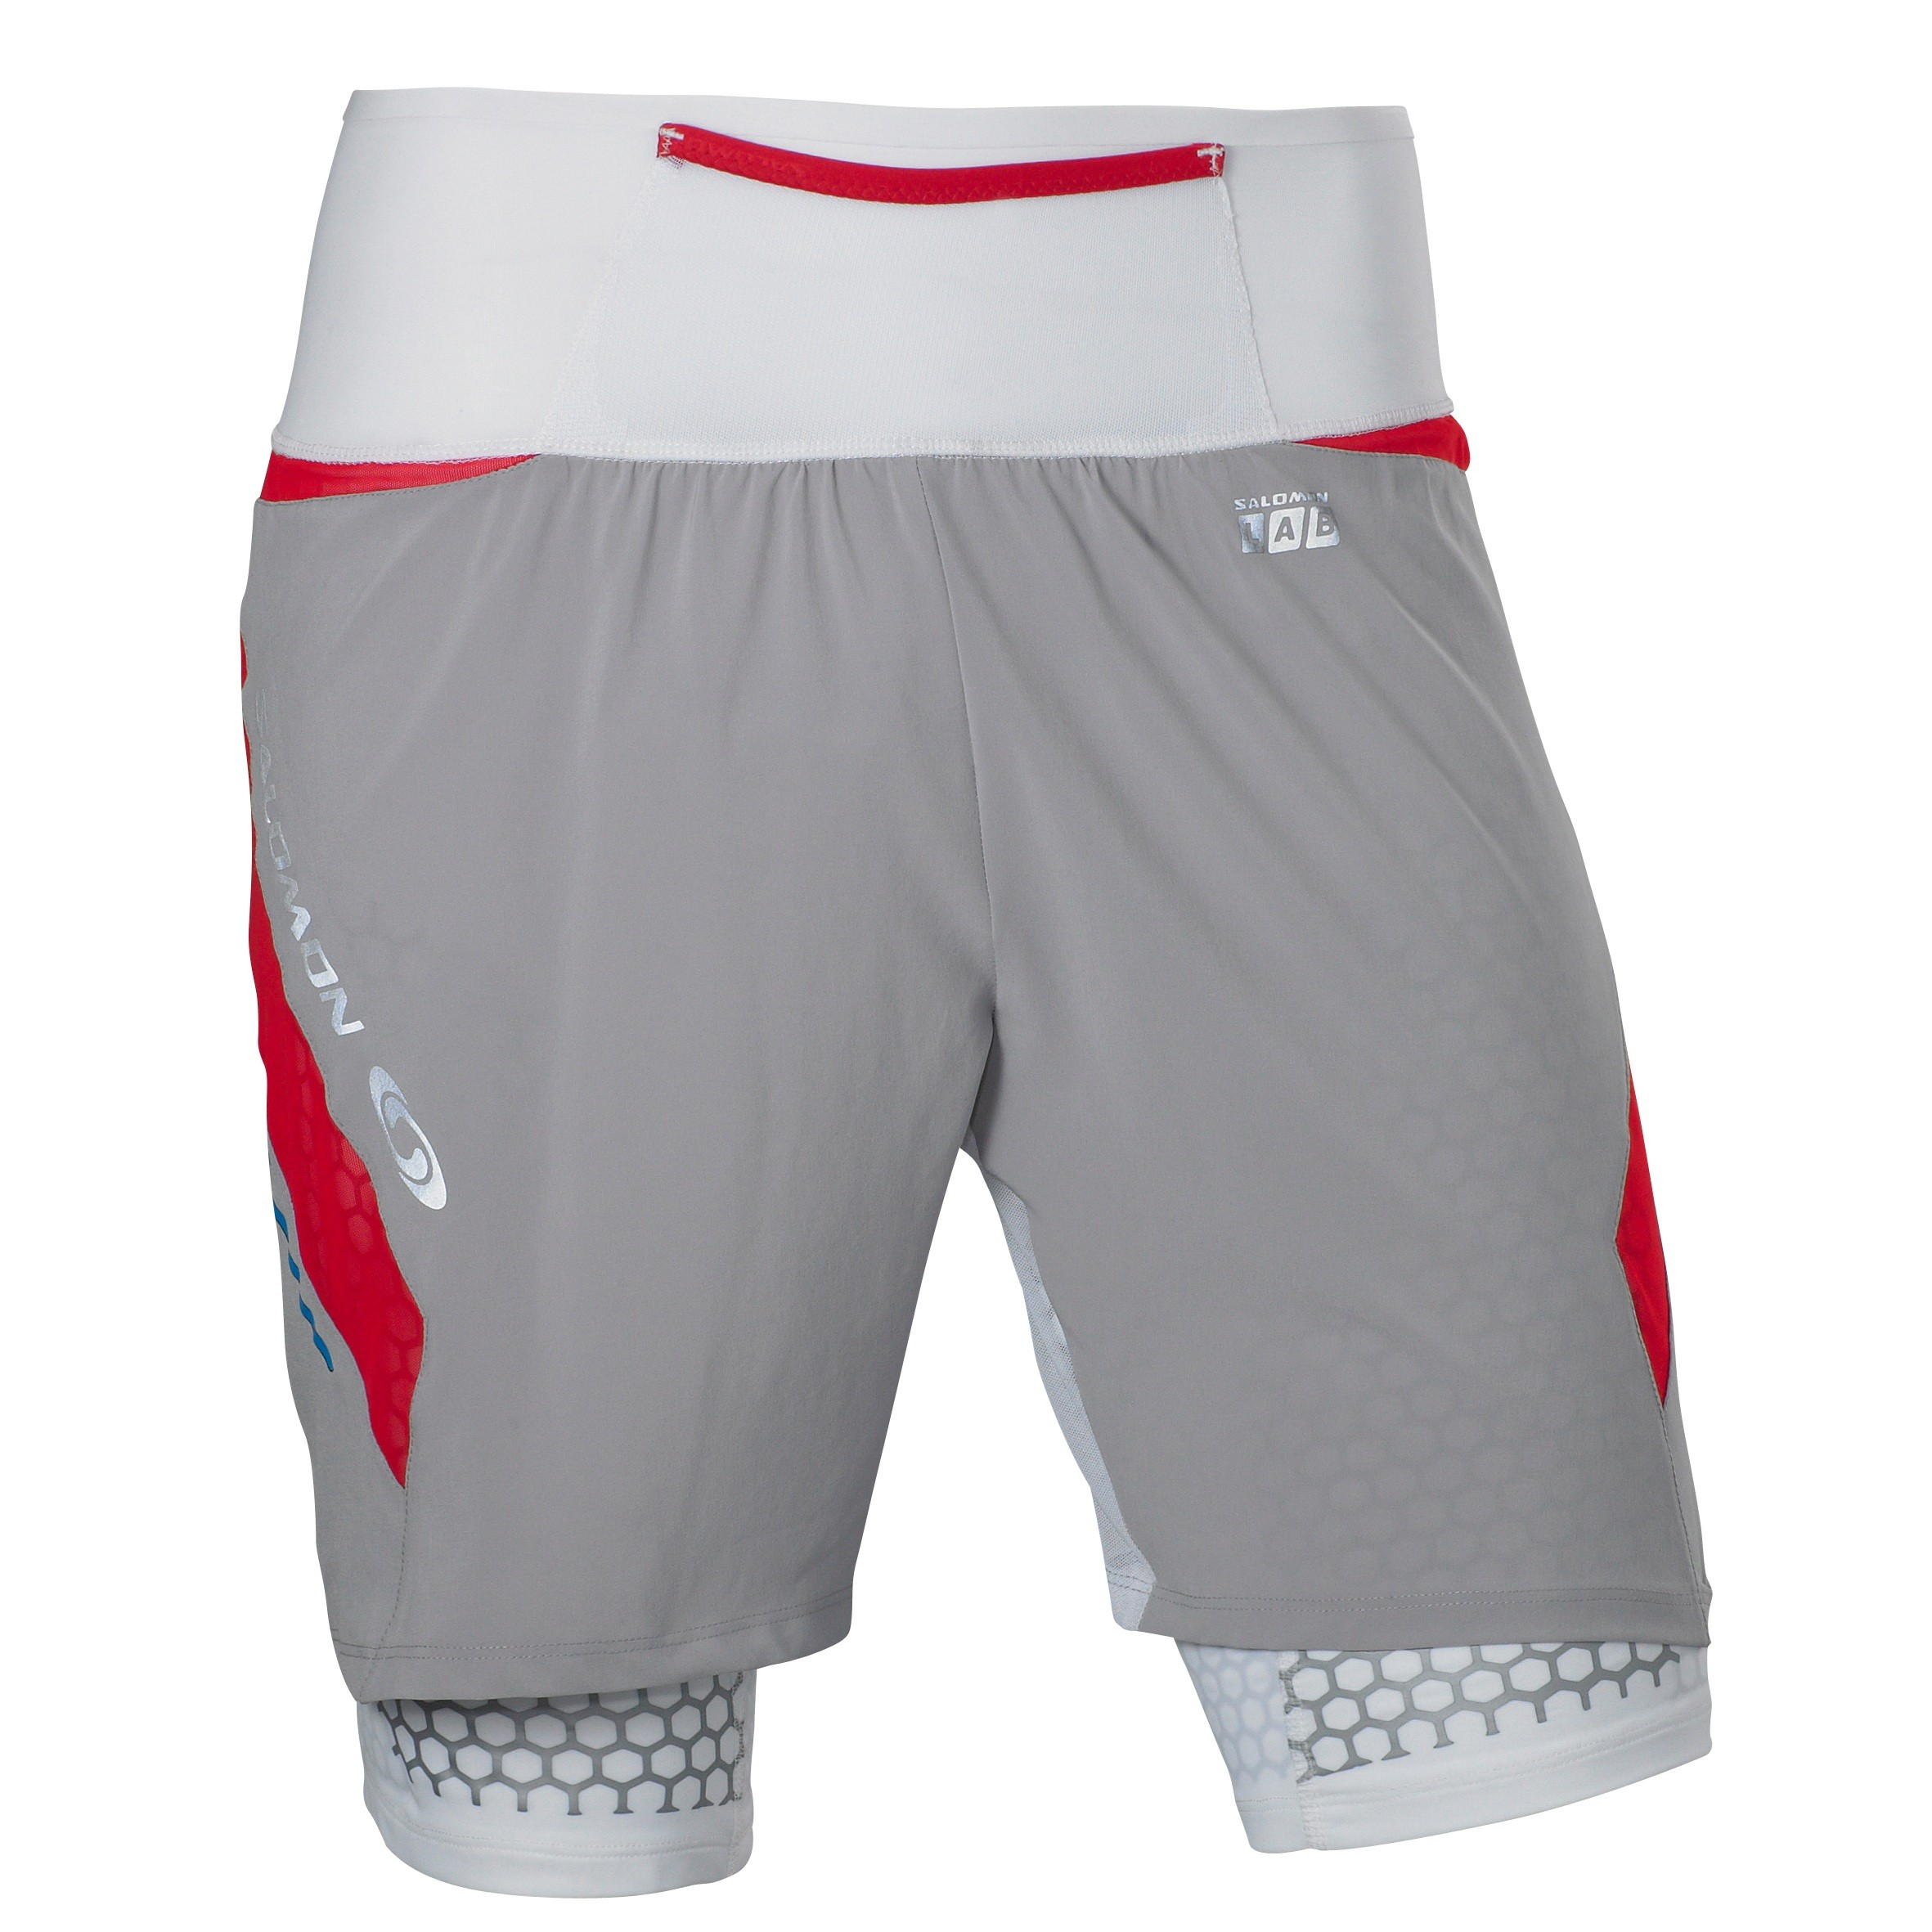 salomon_exo_s-lab_twinskin_short_m_-_white_gray